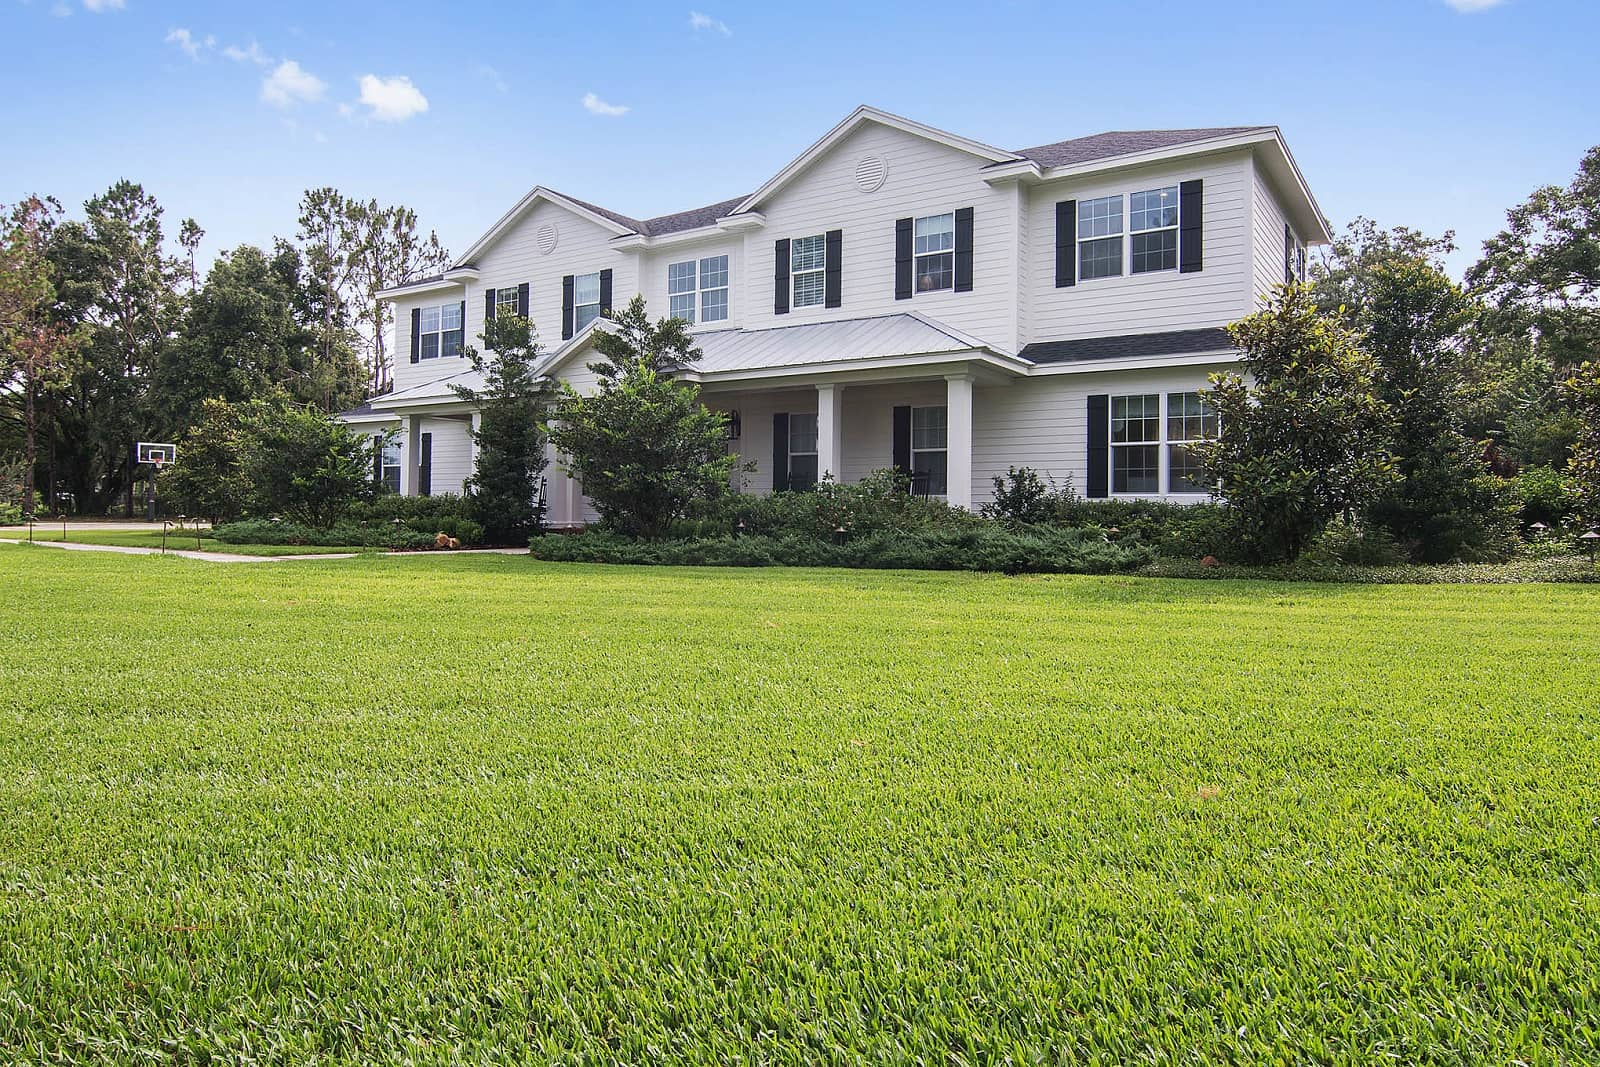 Real Estate Photography in Lakeland - FL - USA - Front View